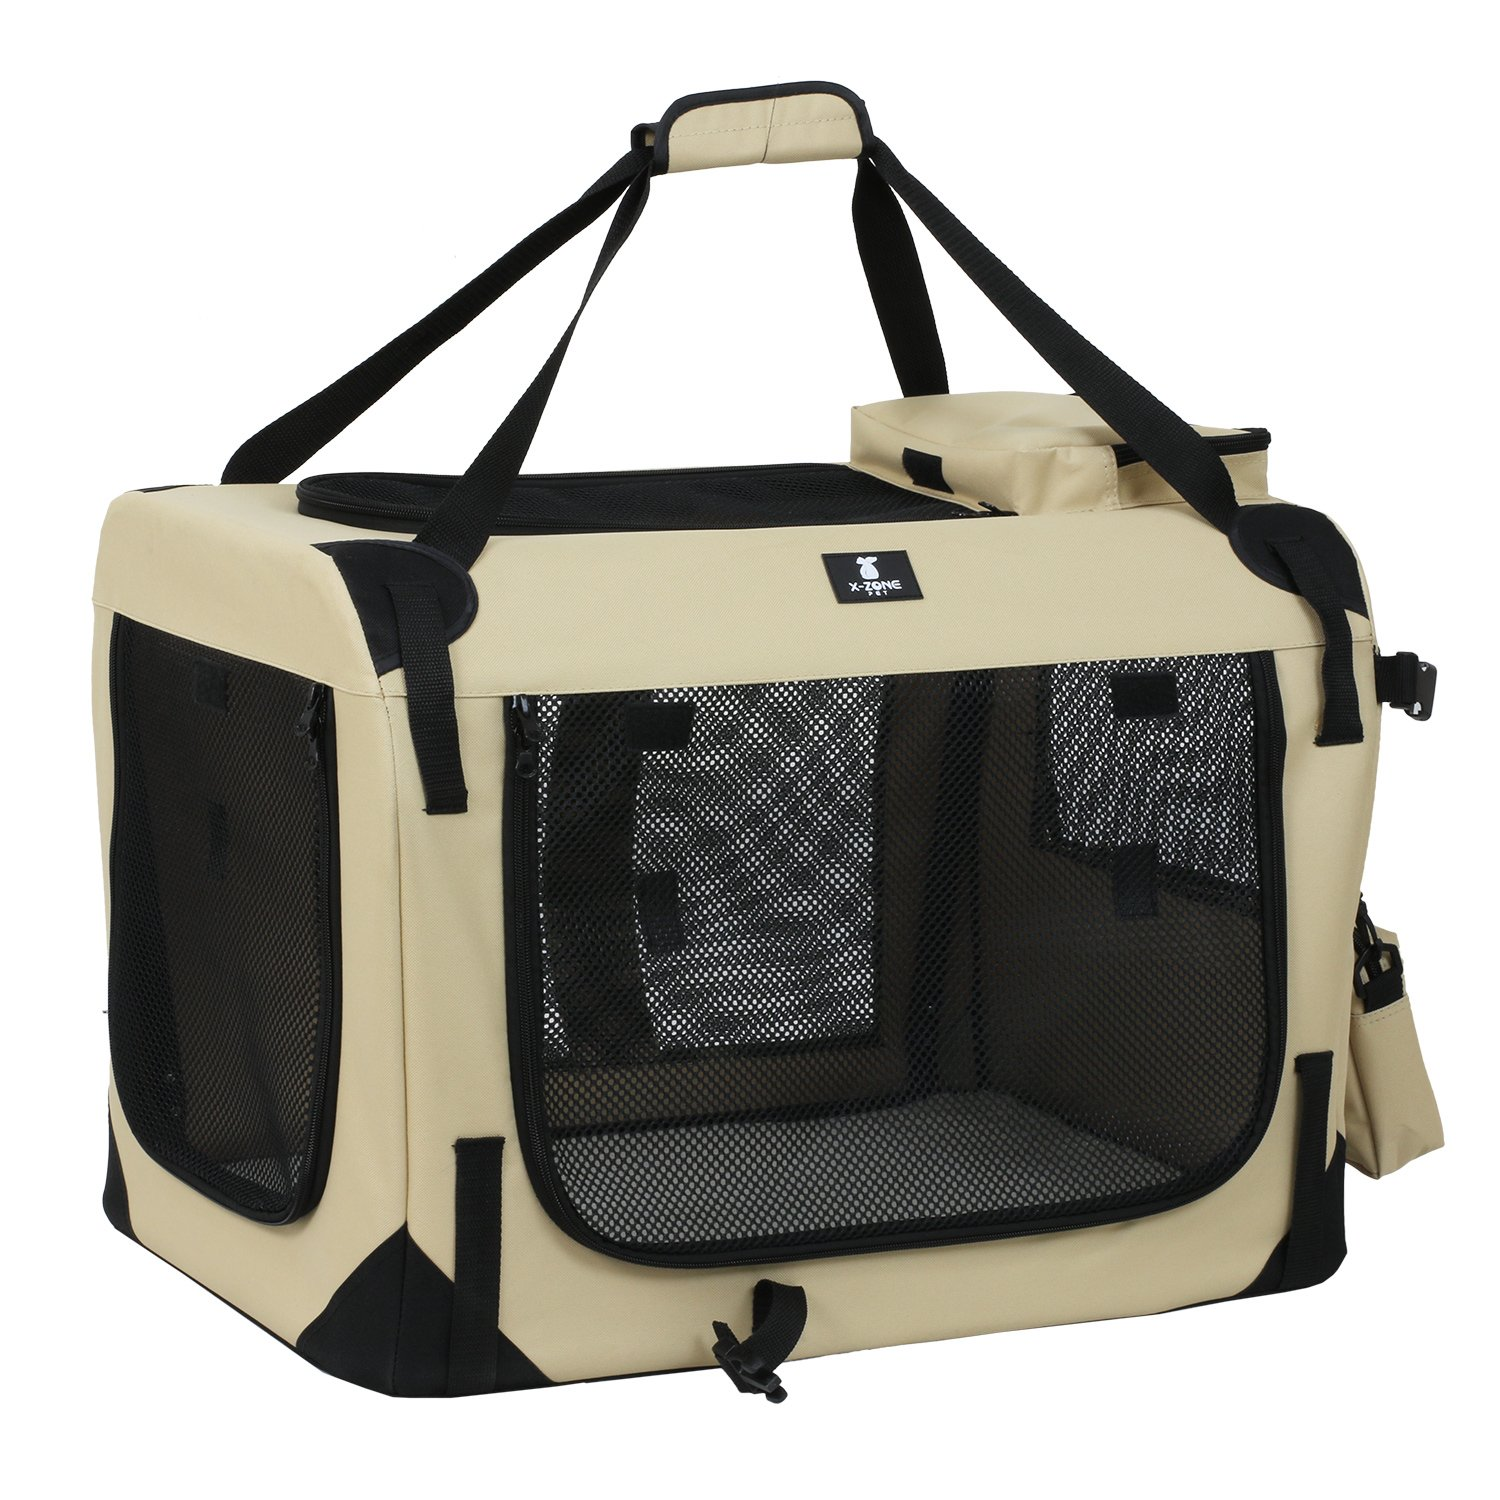 X-ZONE PET 3-Door Folding Soft Dog Crate, Indoor & Outdoor Pet Home, Multiple Sizes and Colors Available by X-ZONE PET (Image #1)